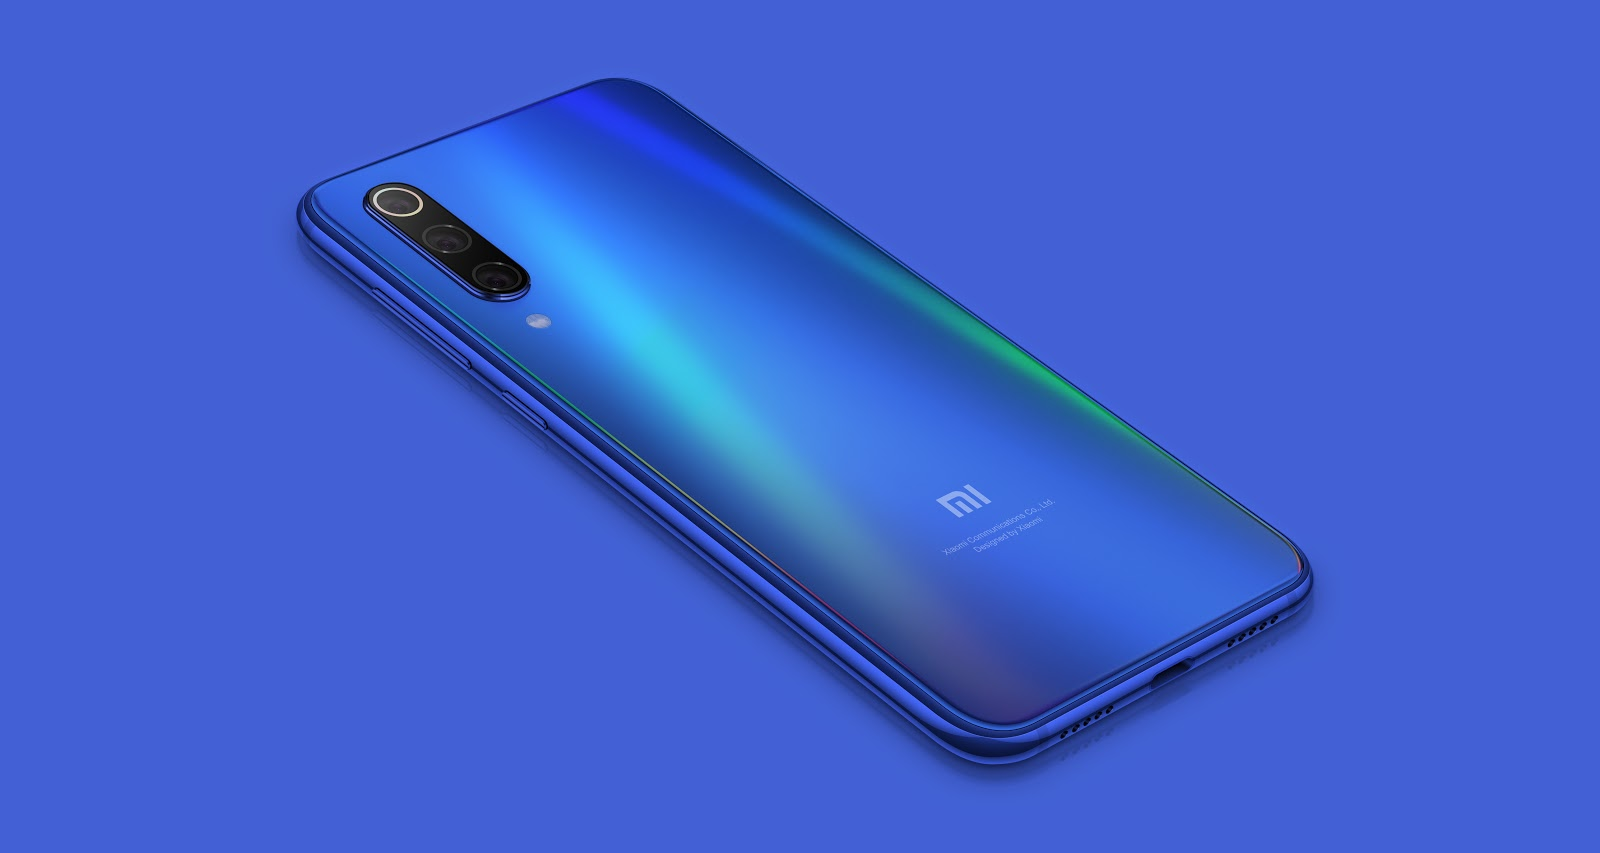 How to Use Mi 9 SE Ultra-Wide Angle to Capture More? - Mi 9/SE/T